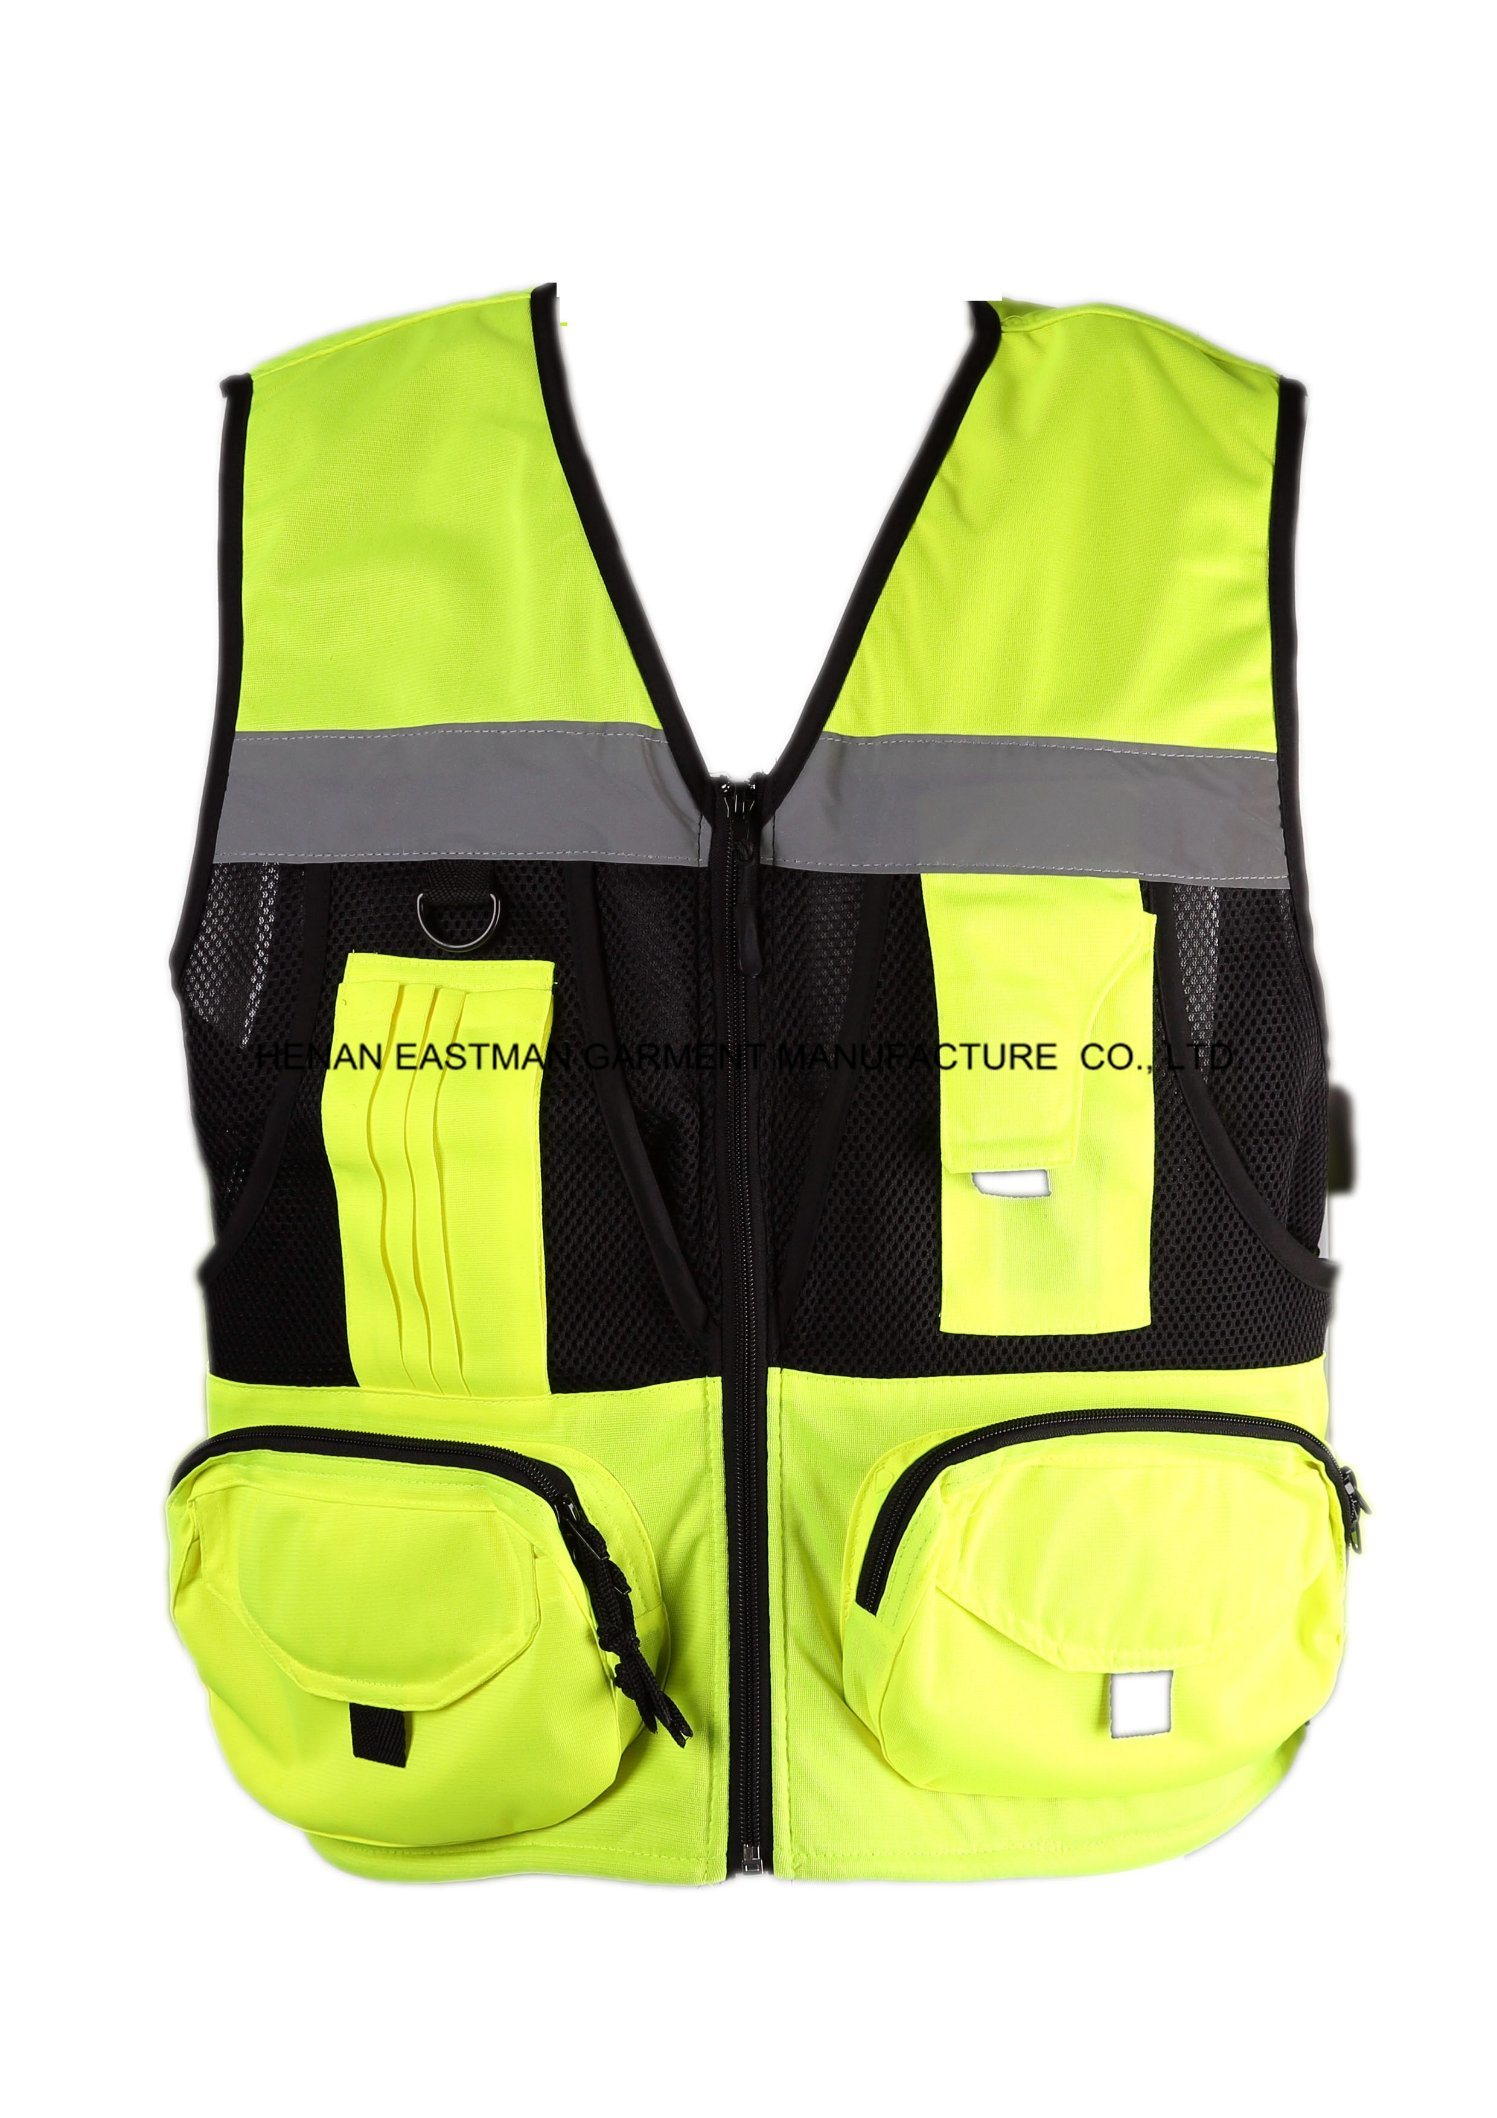 Fluor Safety Workwear Vest Multi-Pocket Reflective Vest